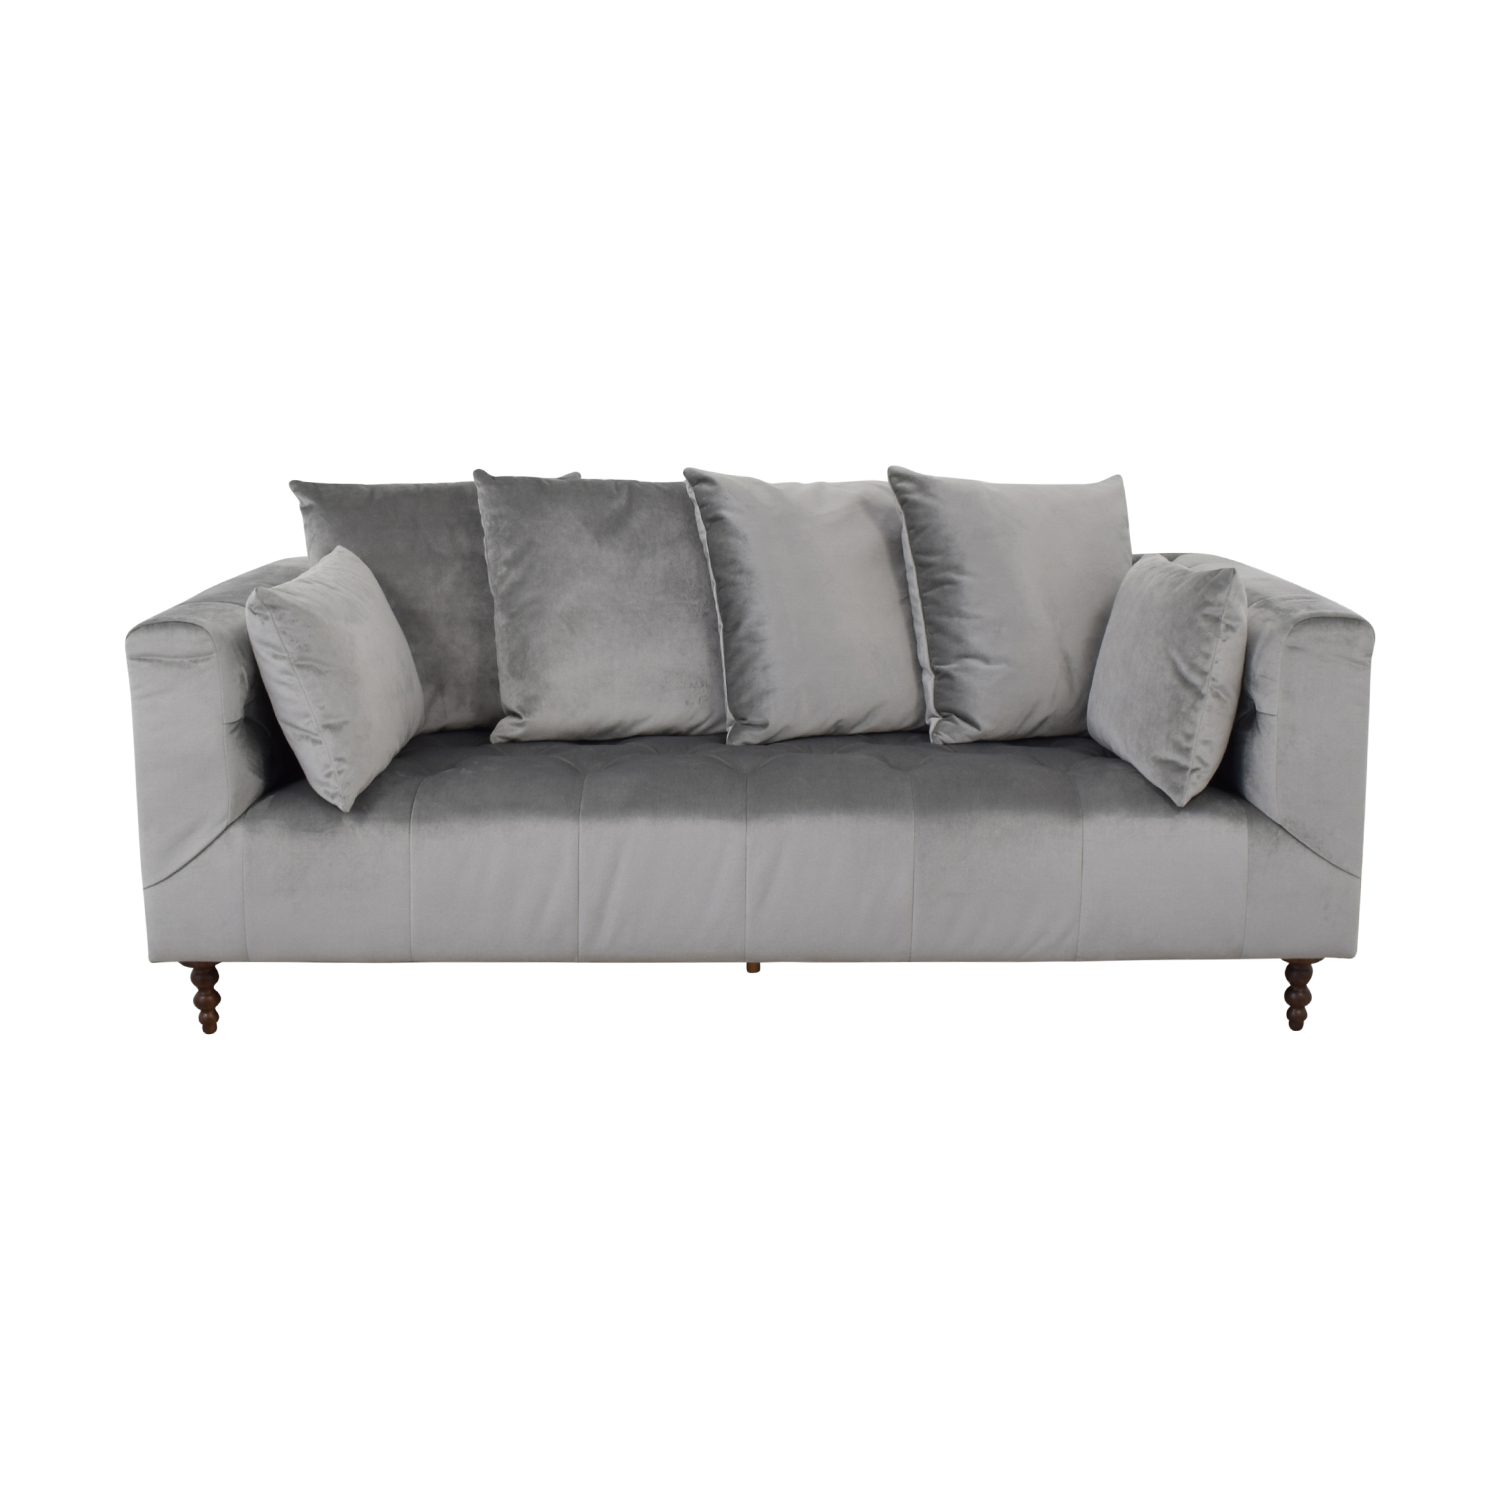 Interior Define Ms. Chesterfield Sofa coupon